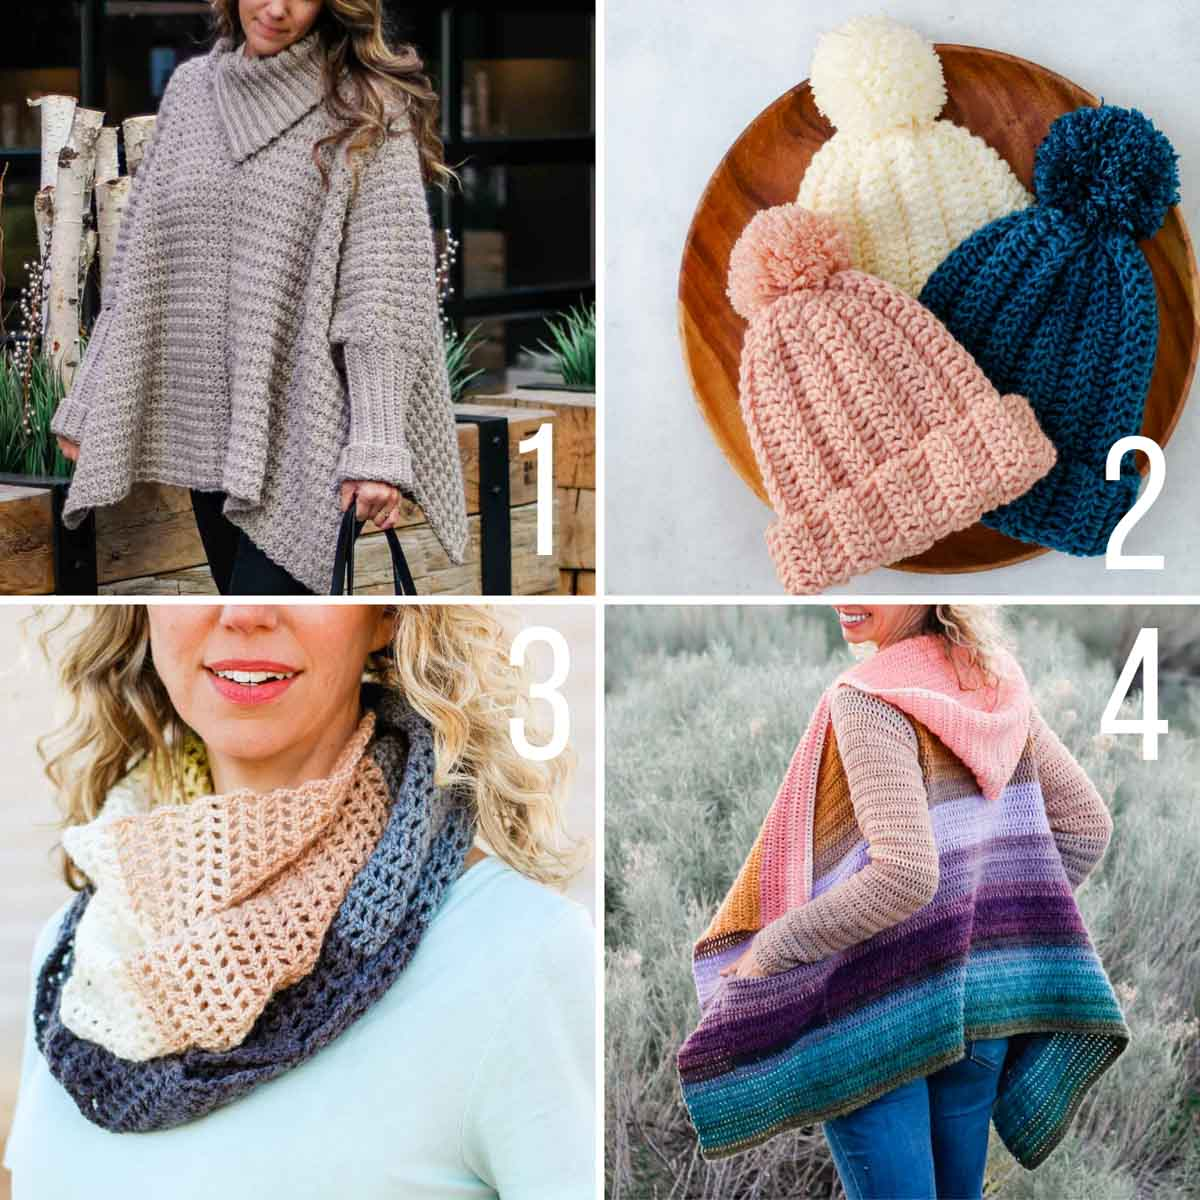 Four free crochet patterns for beginners, including a poncho with sleeve, a chunky beanie, a beautiful triangle scarf, and a hooded sweater.